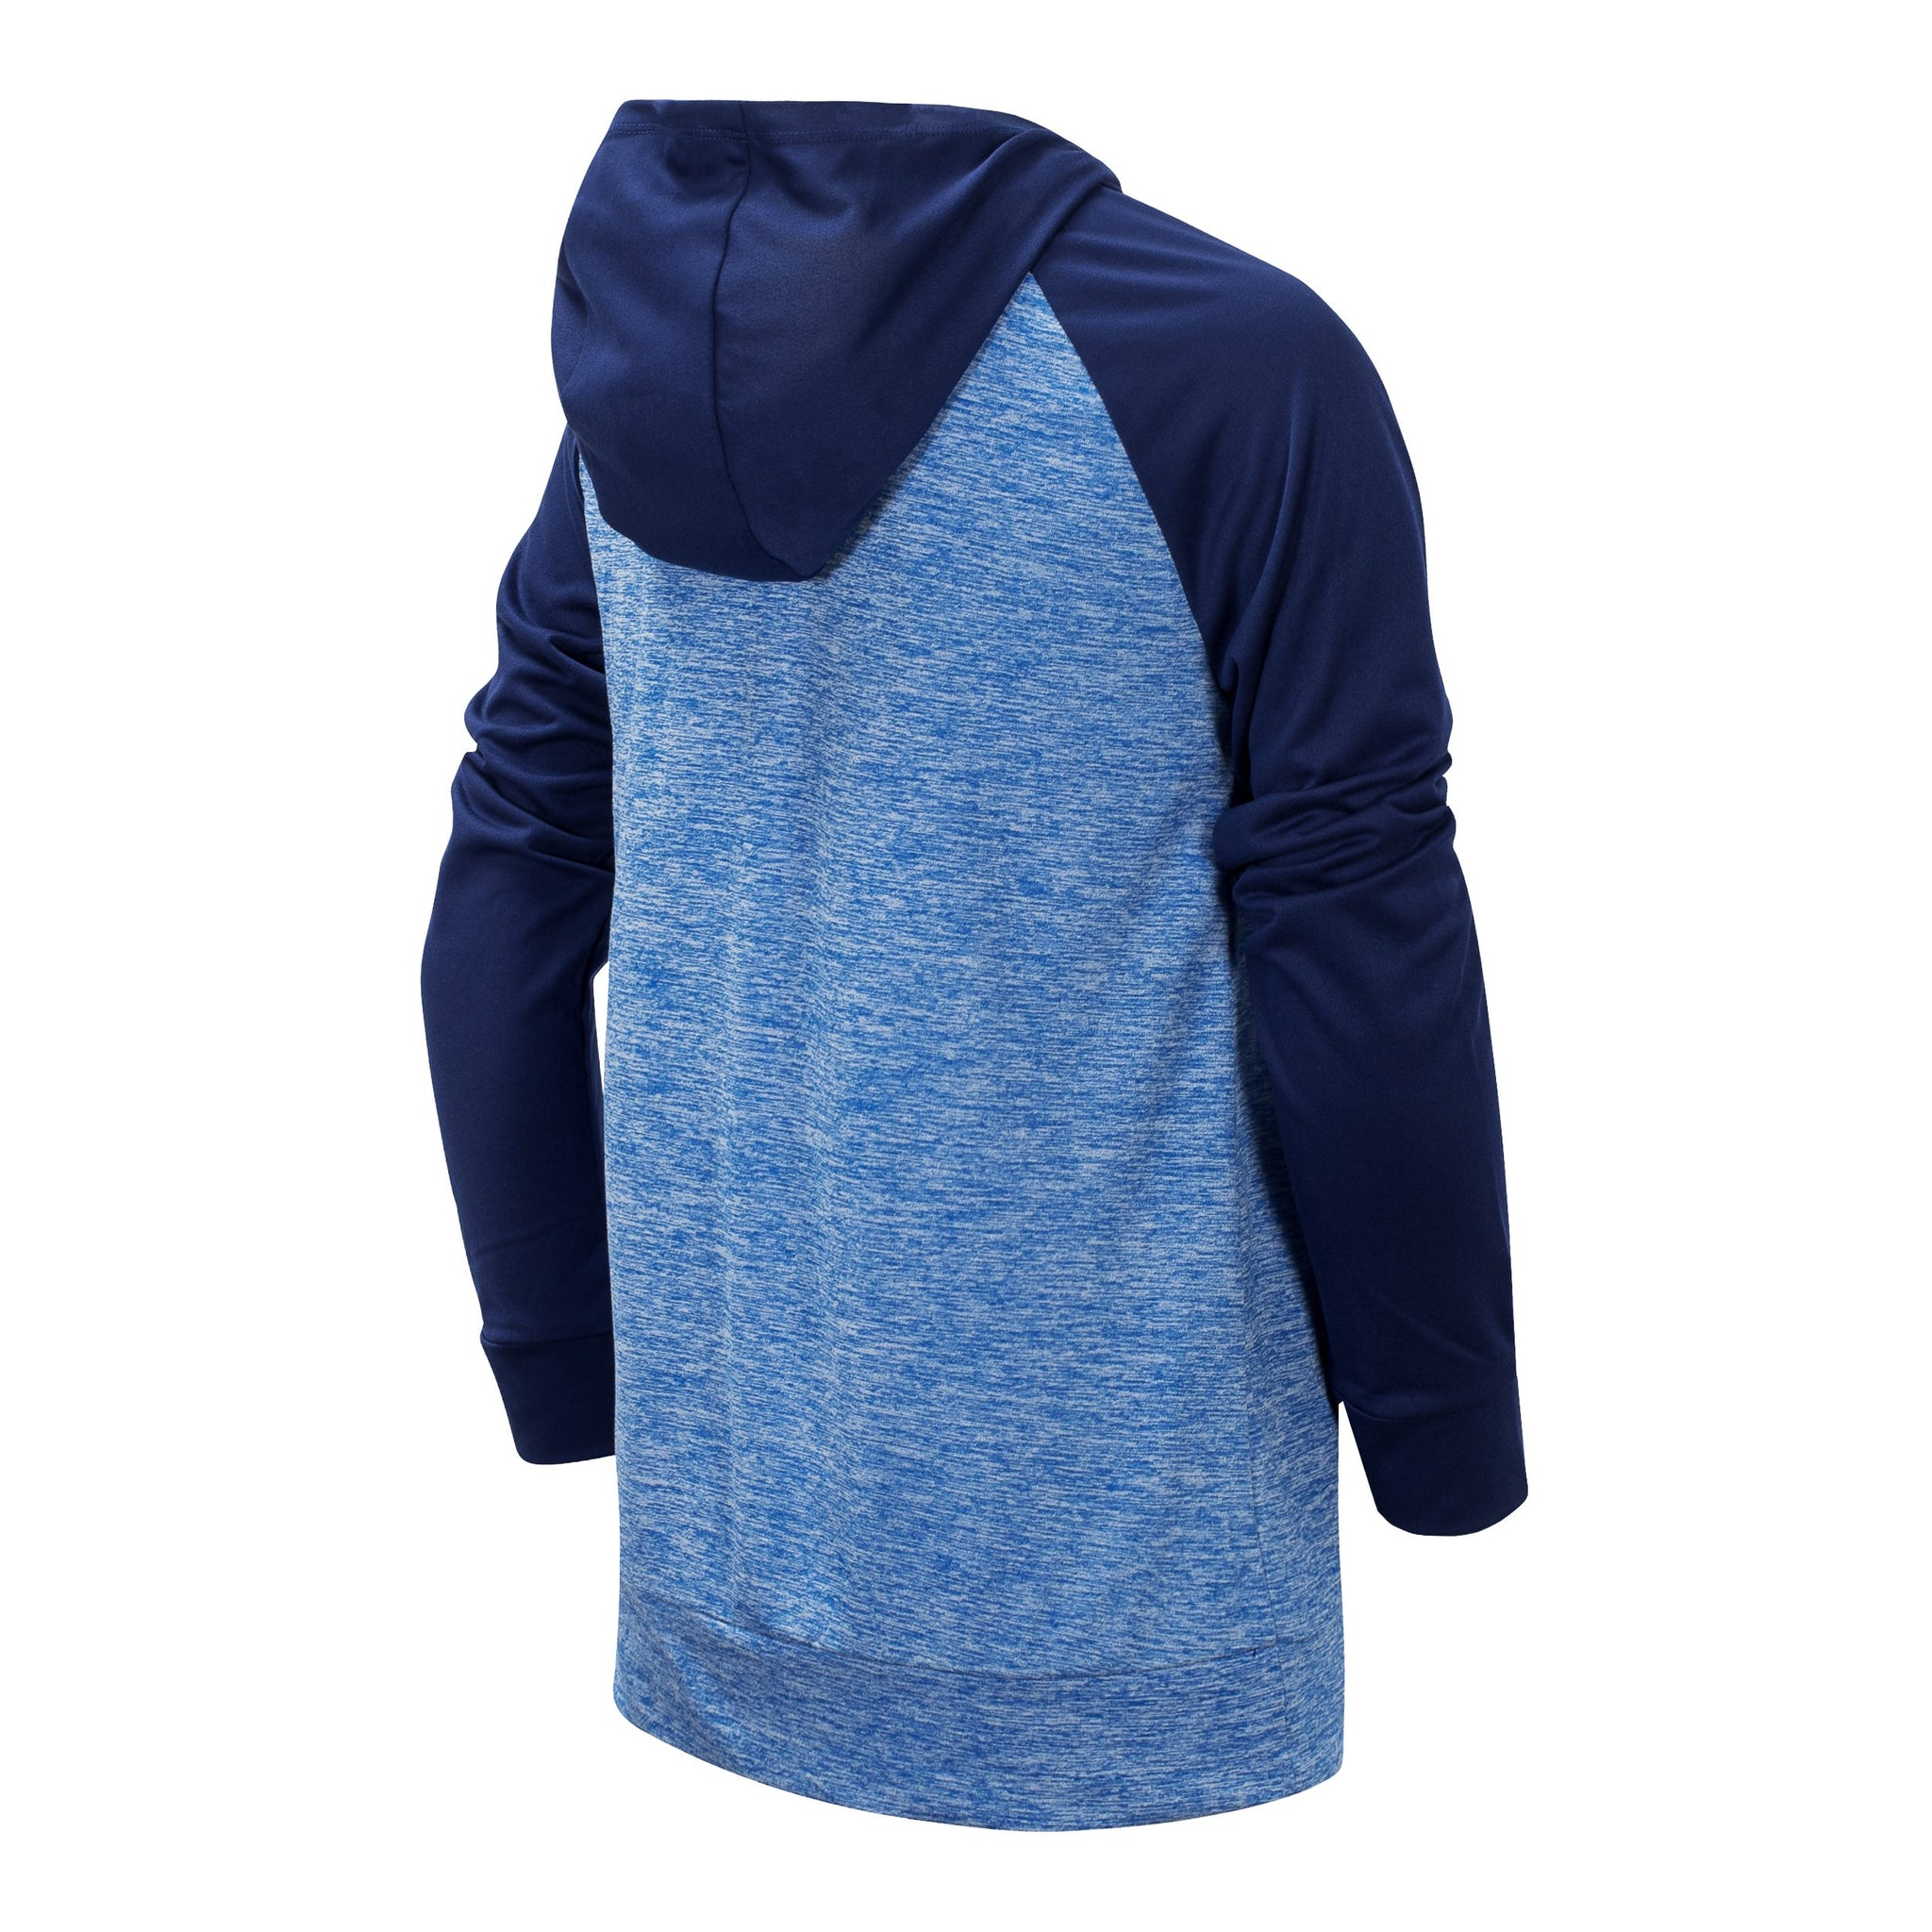 Boys' Lapis Blue Long Sleeve Hooded Performance Top